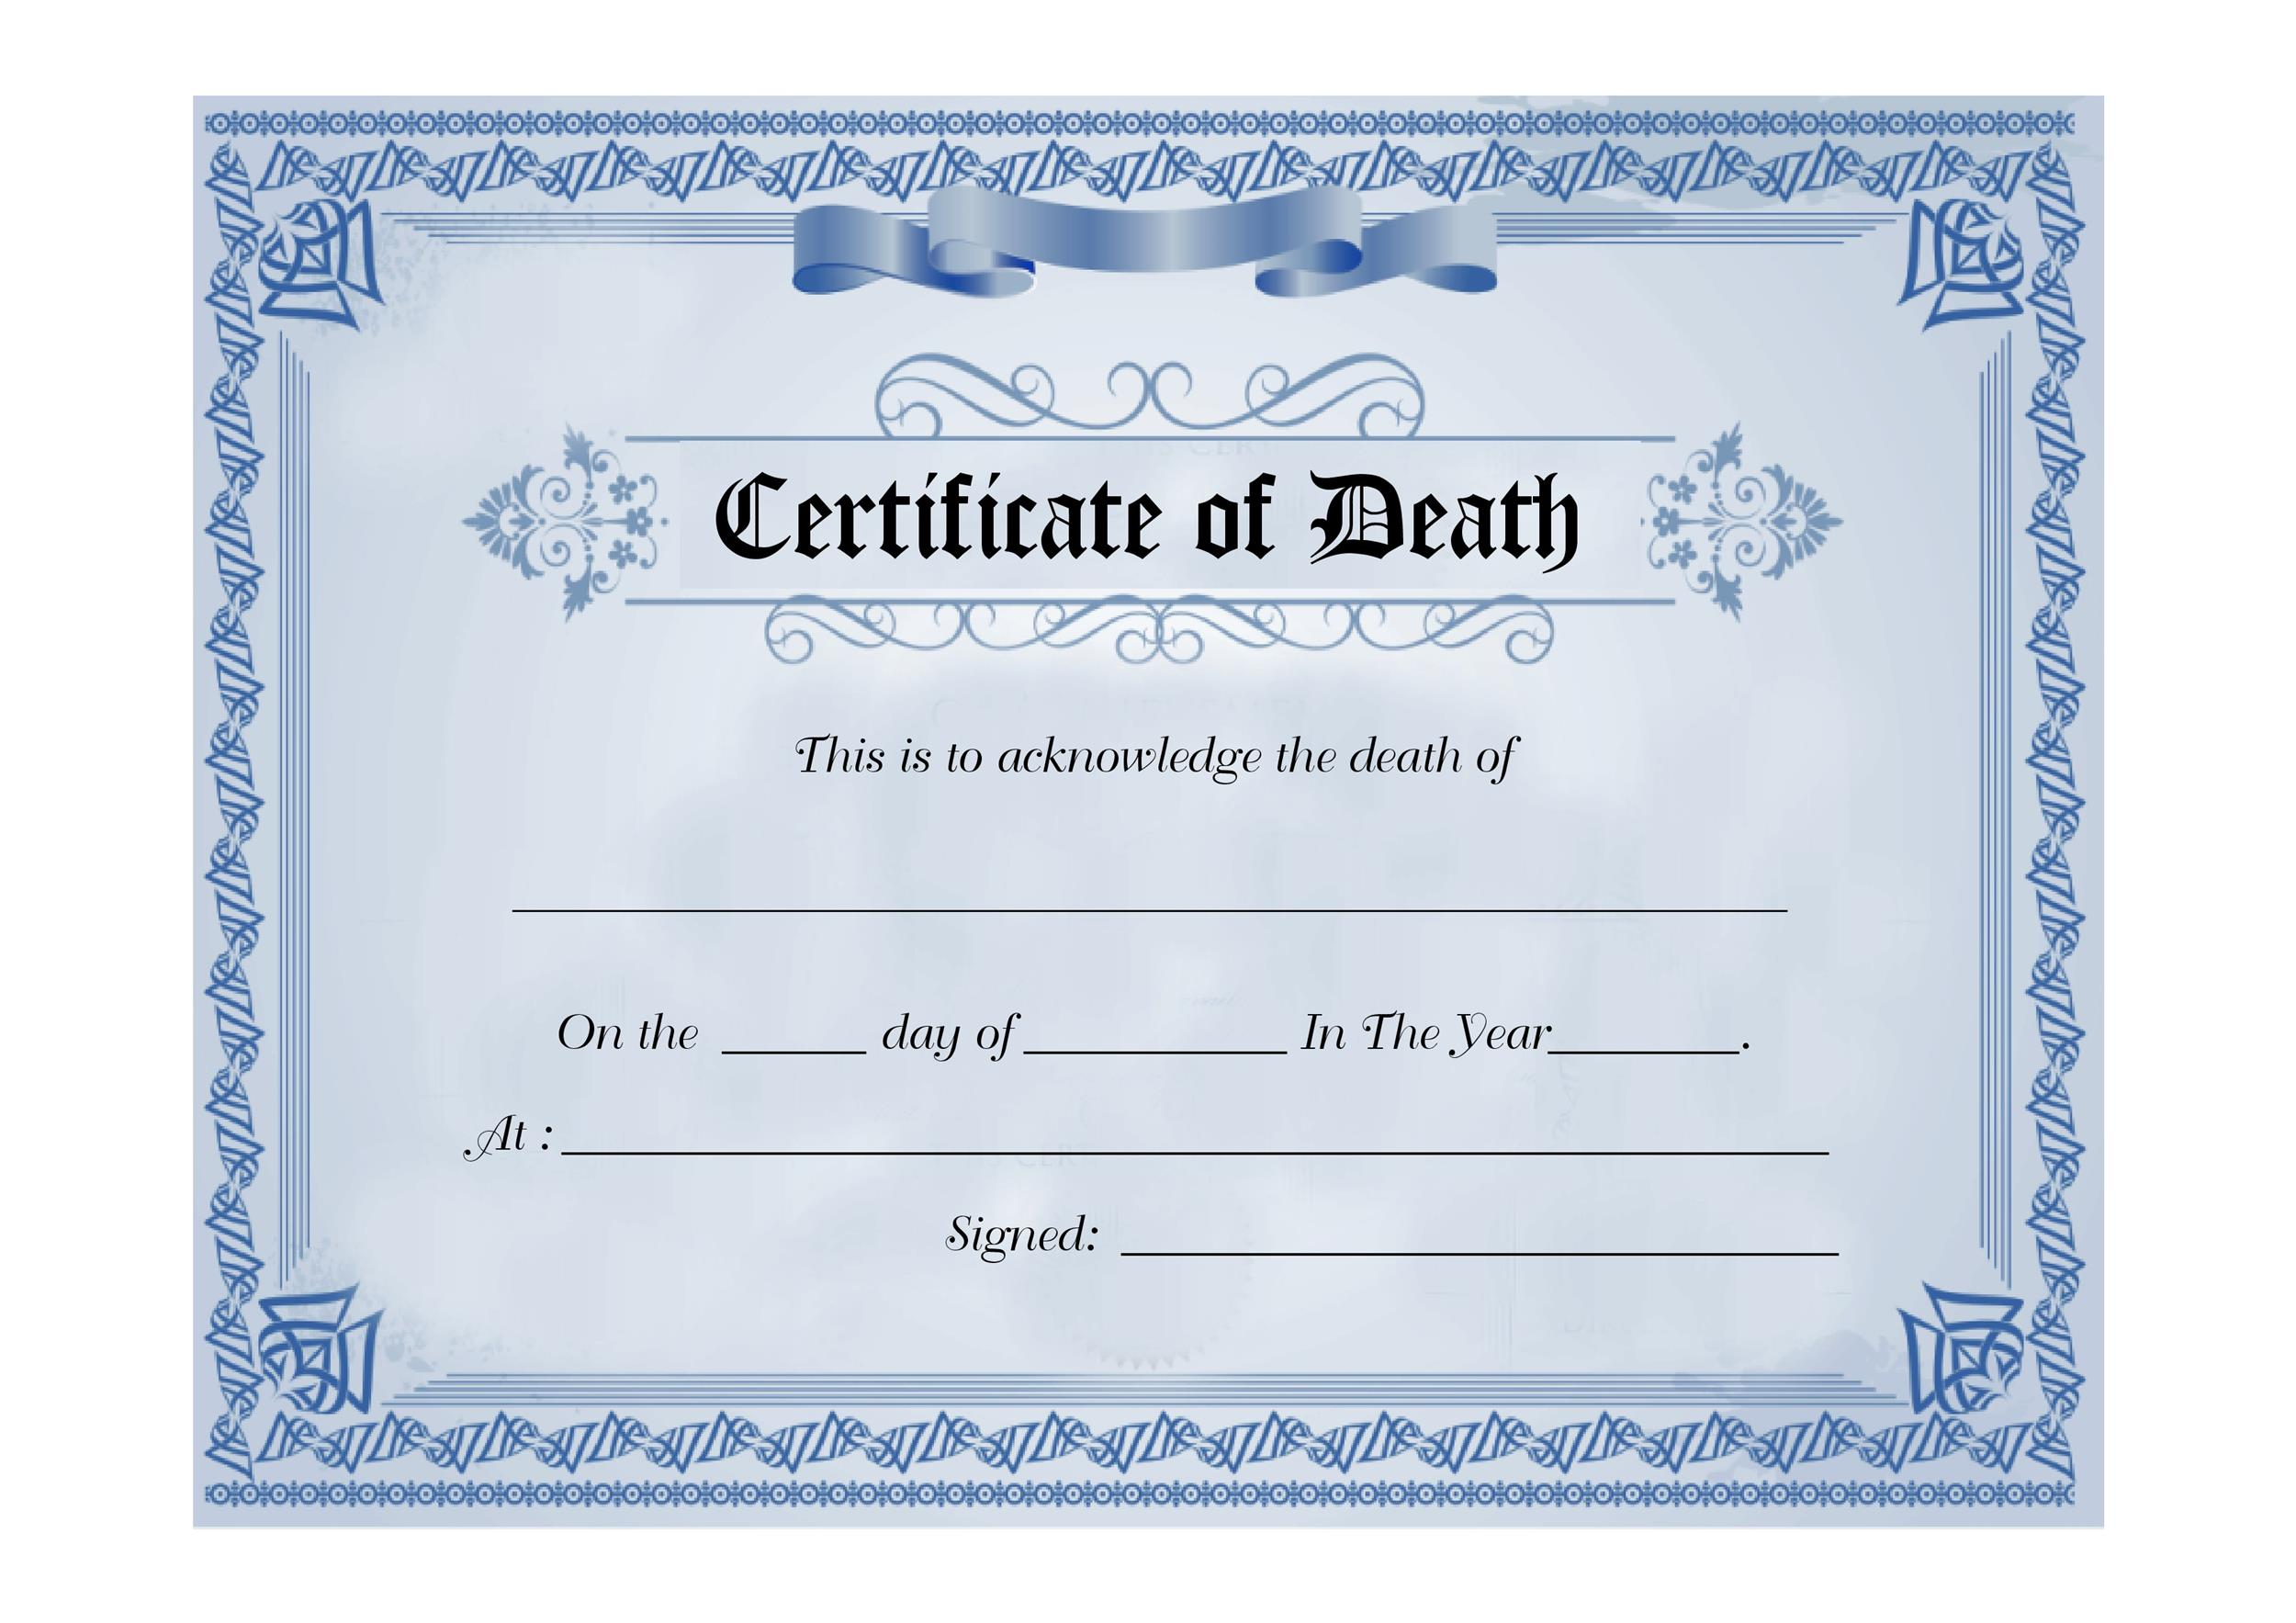 37 Blank Death Certificate Templates [100% FREE]